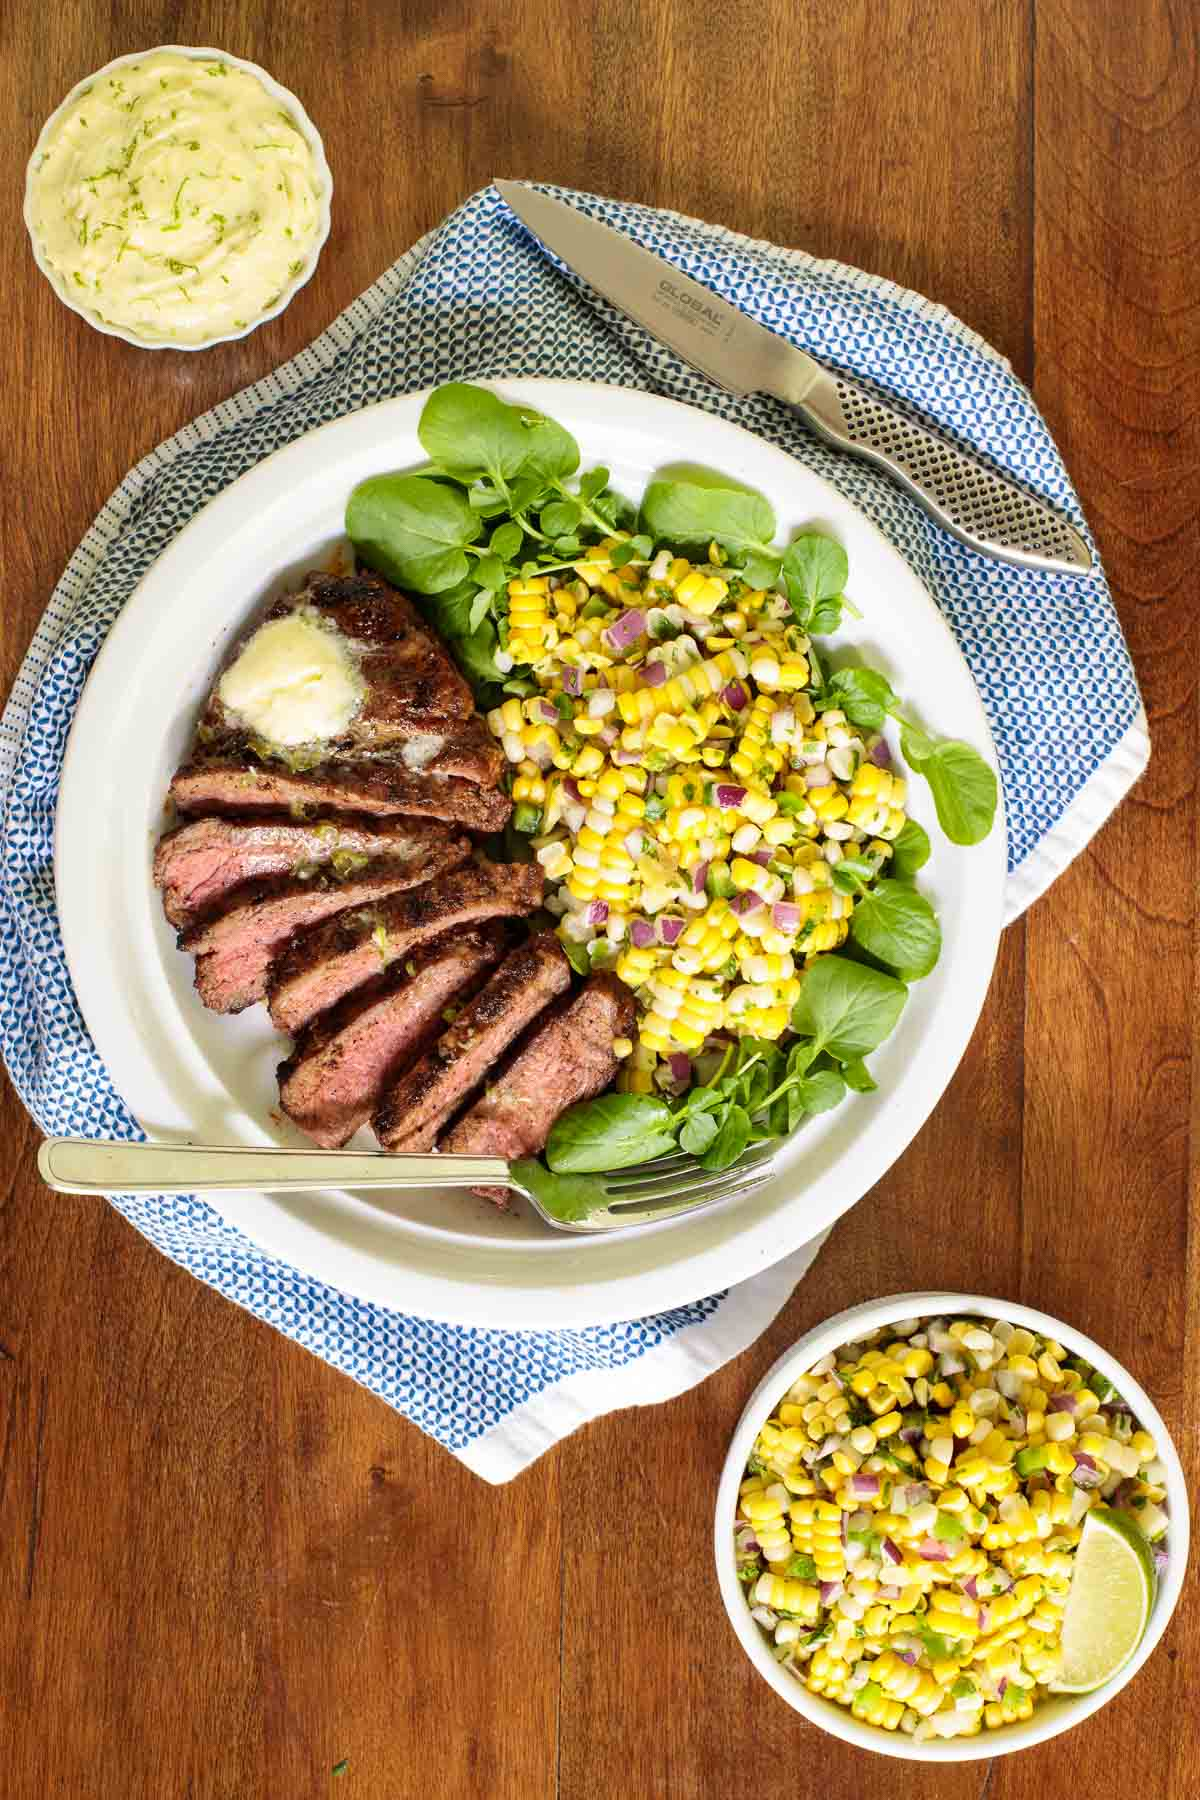 Overhead picture of perfectly grilled steak with corn salad on a wooden table